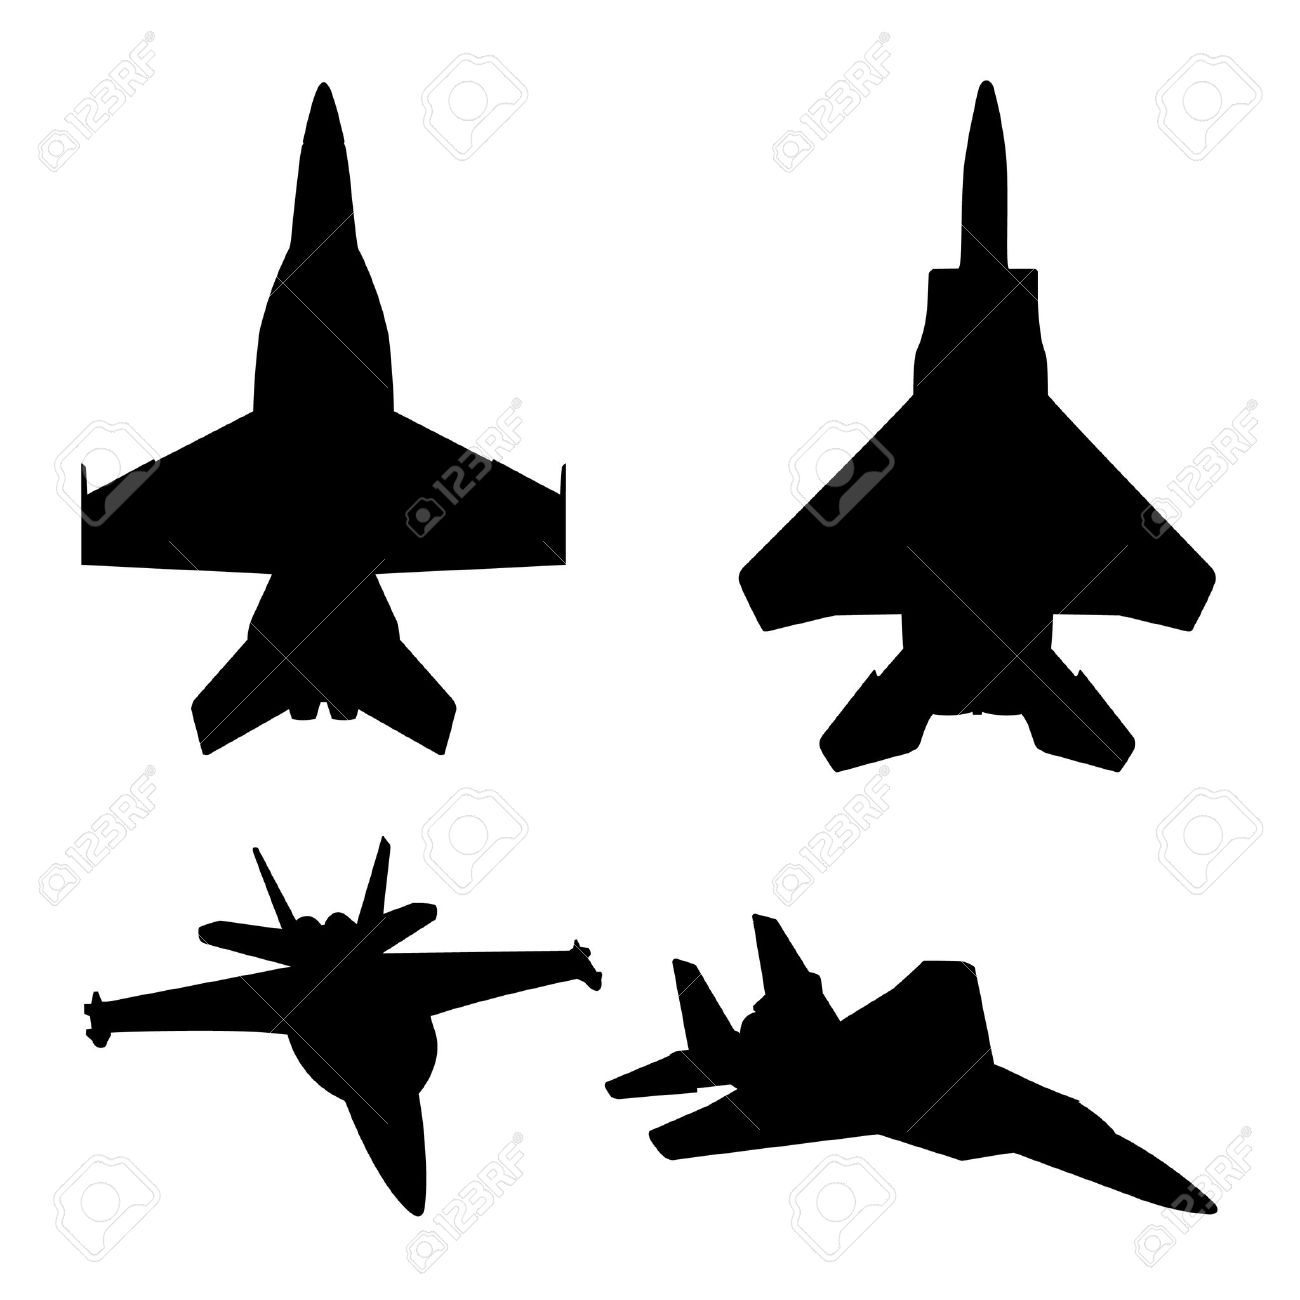 F-18 Silhouette - ClipArt jpg freeuse